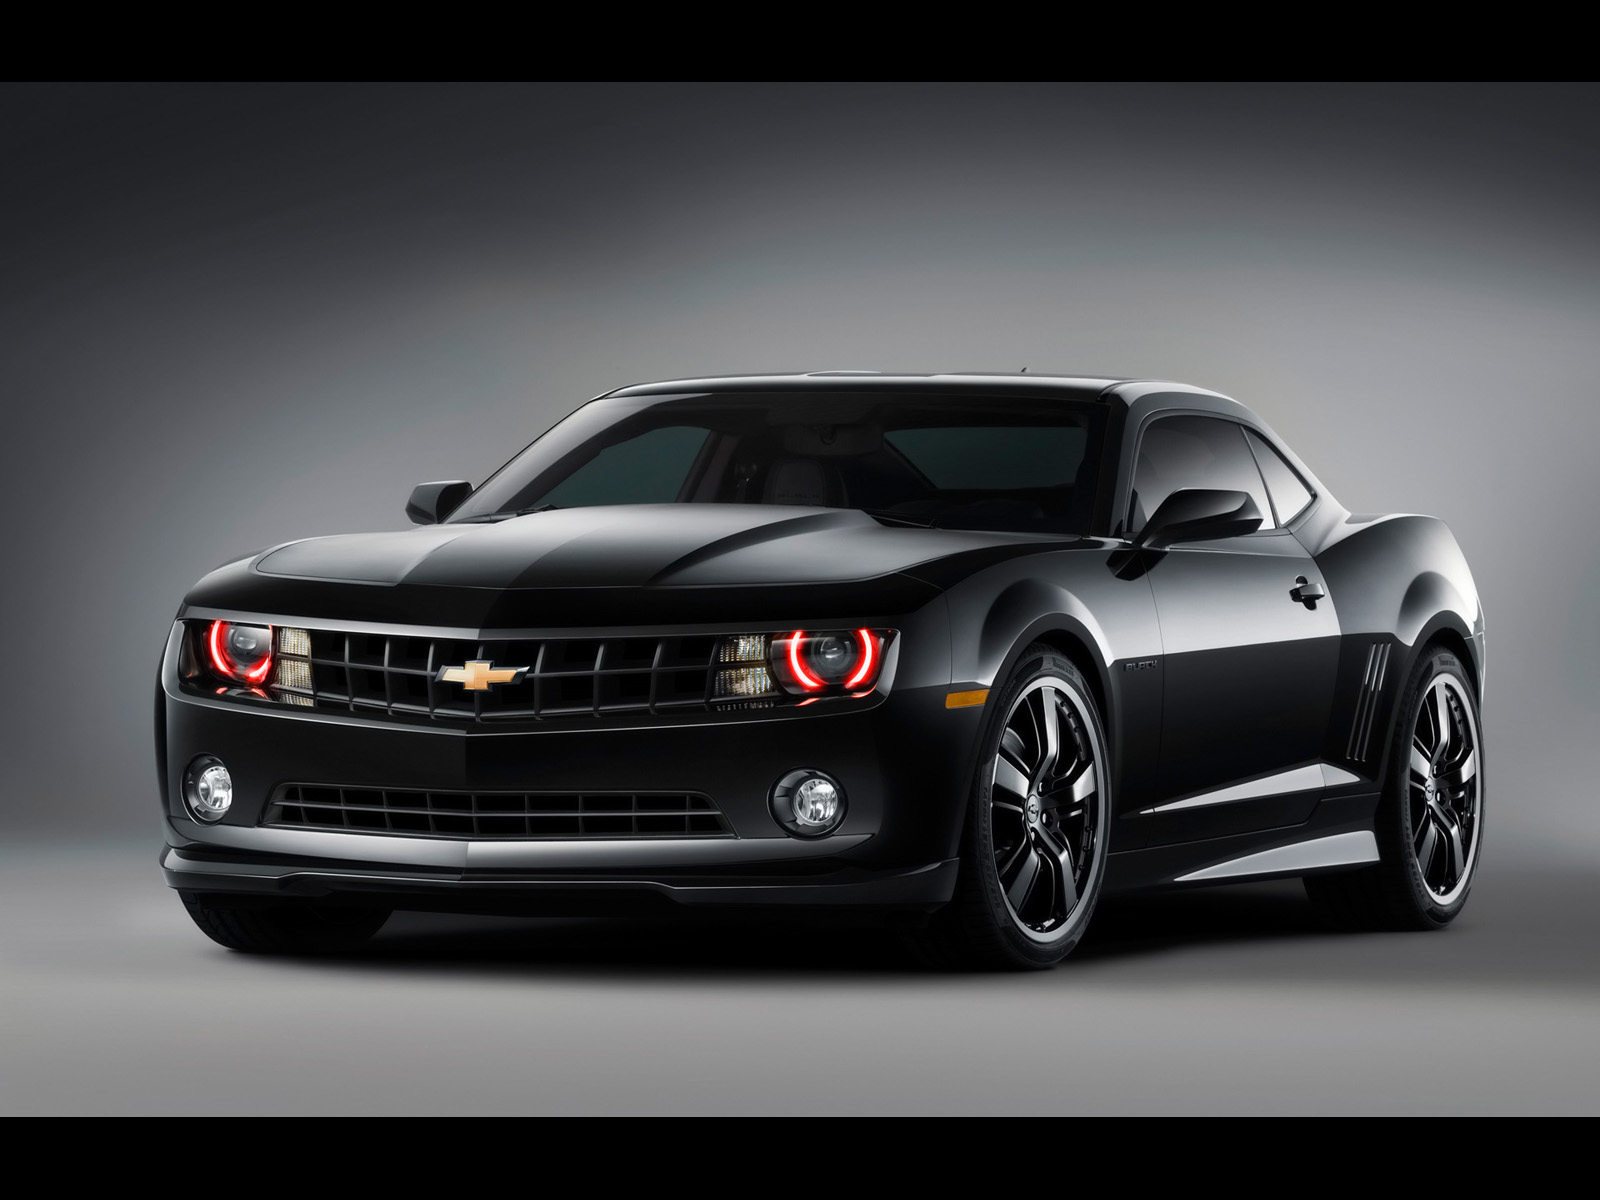 Black Chevy Camaro Wallpaper 5296 Hd Wallpapers in Cars   Imagescicom 1600x1200